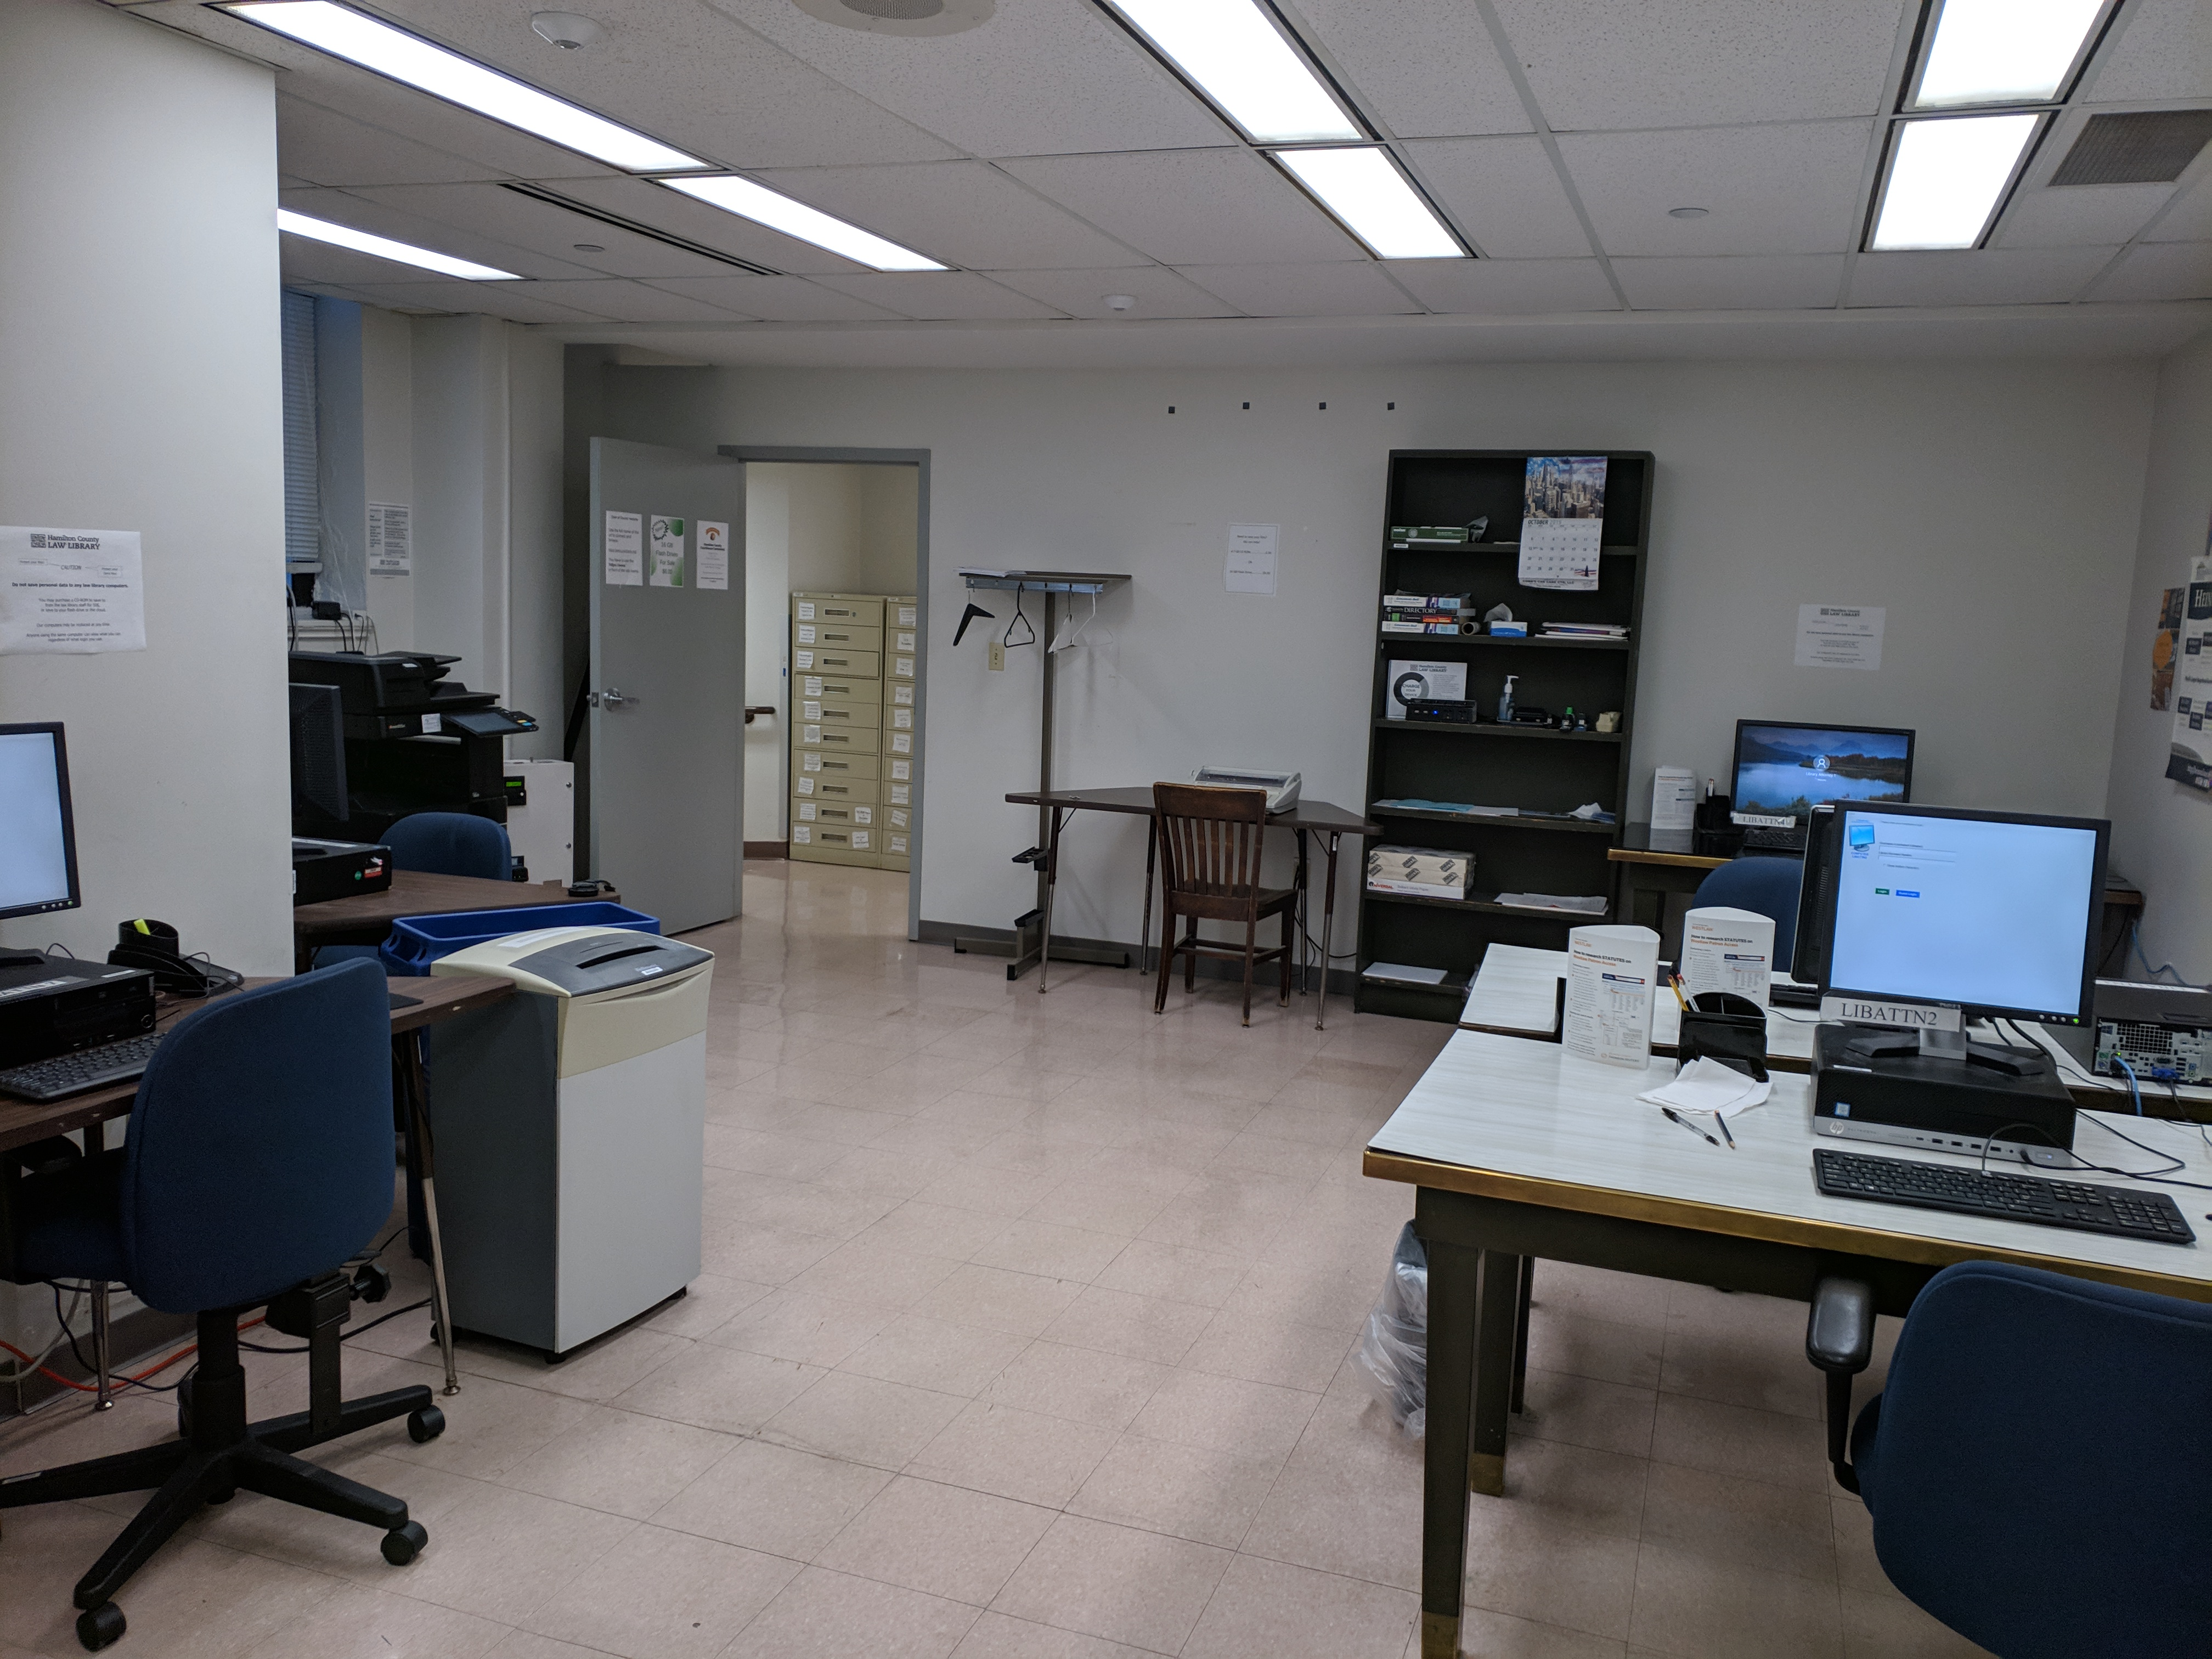 Computers Temporarily Removed from Computer Lab